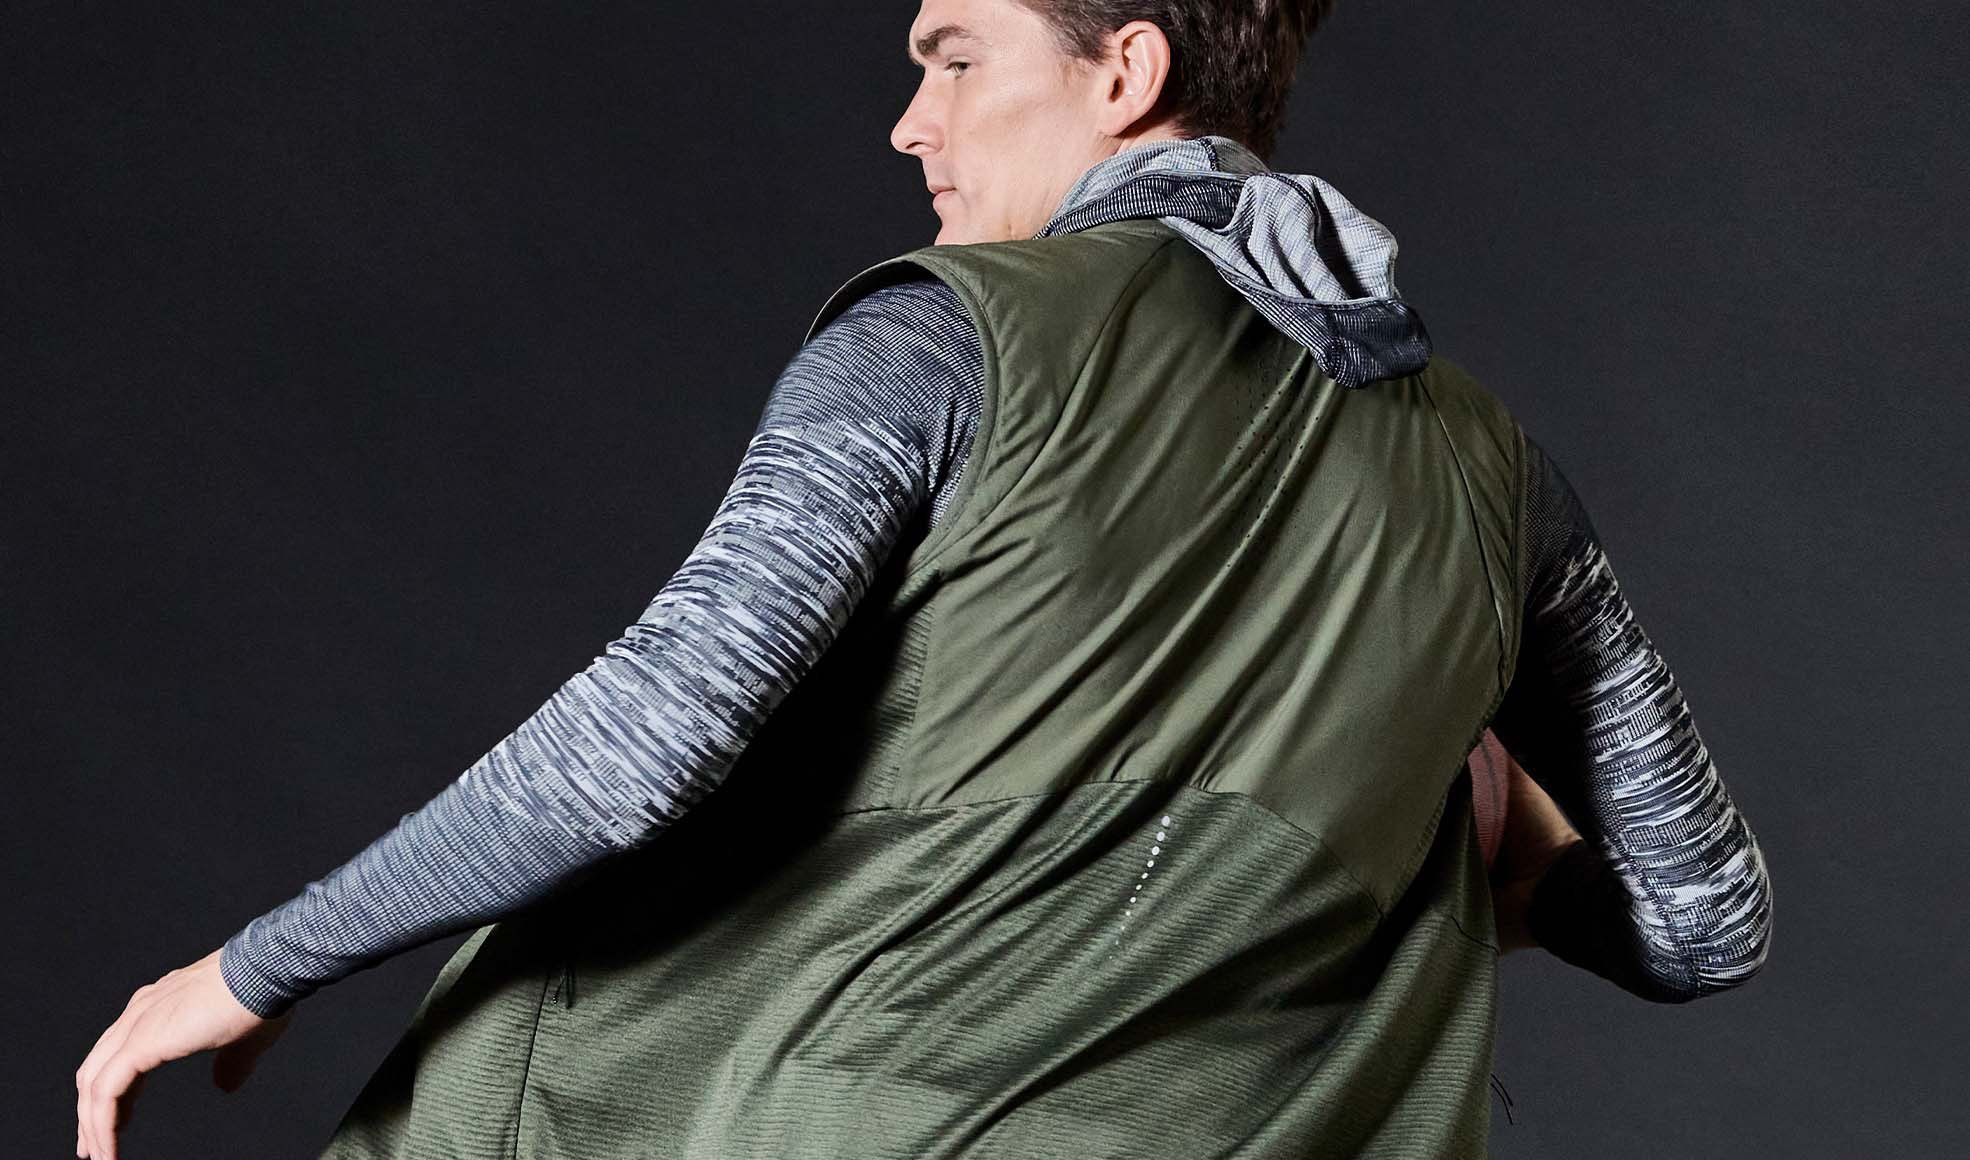 Synthetic insulation crafted for comfort and warmth.